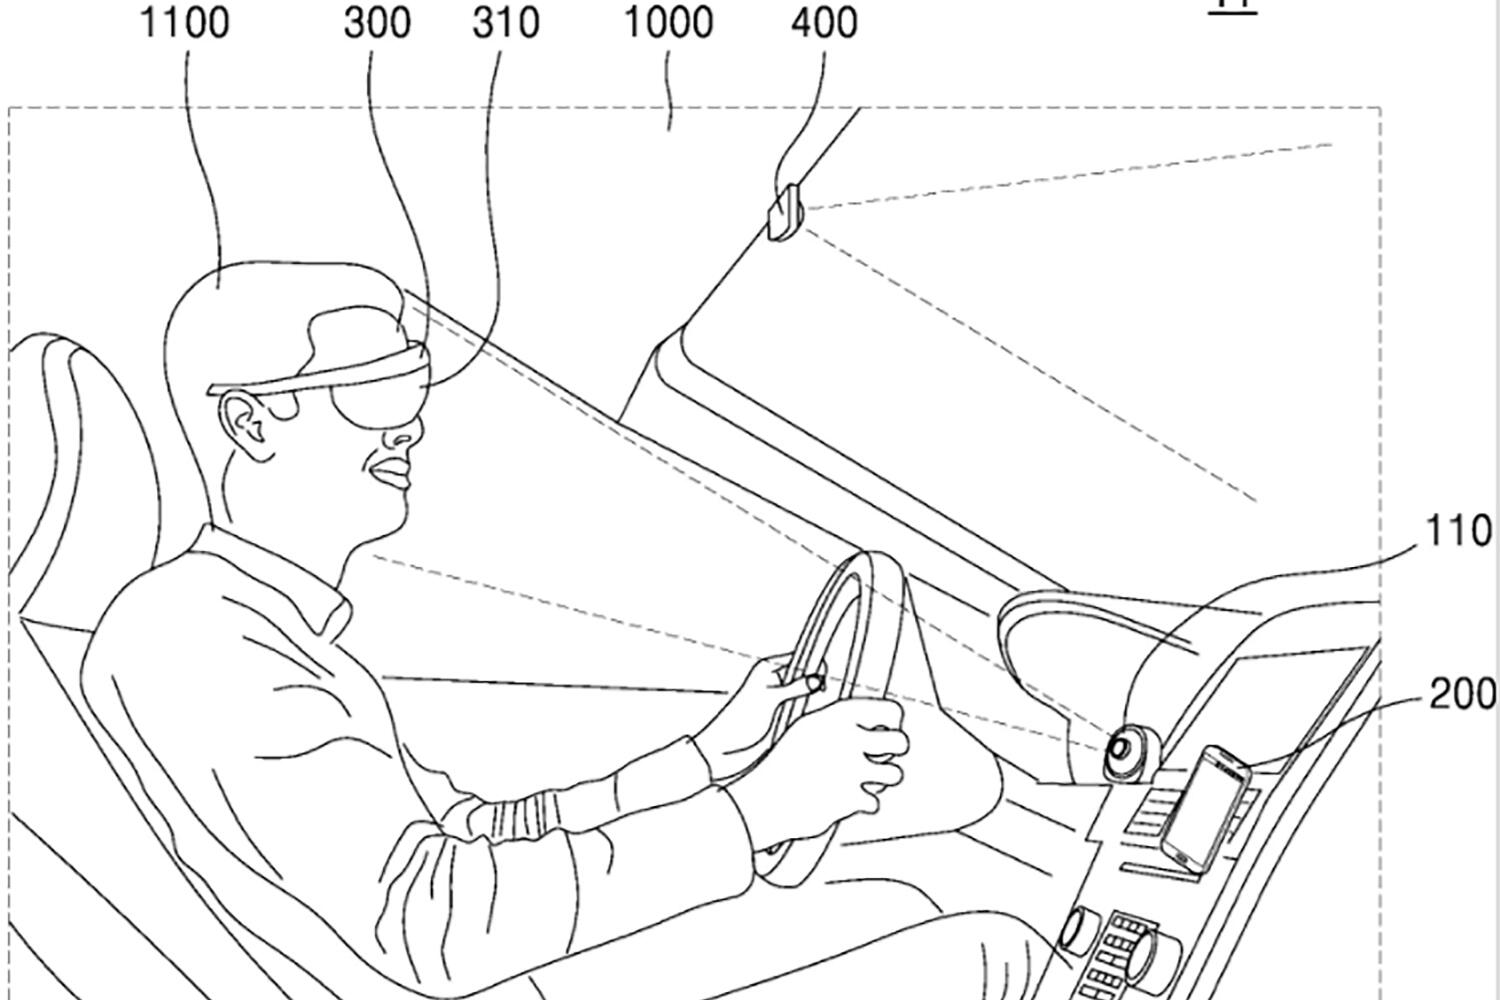 Samsung AR glasses with navigation patent